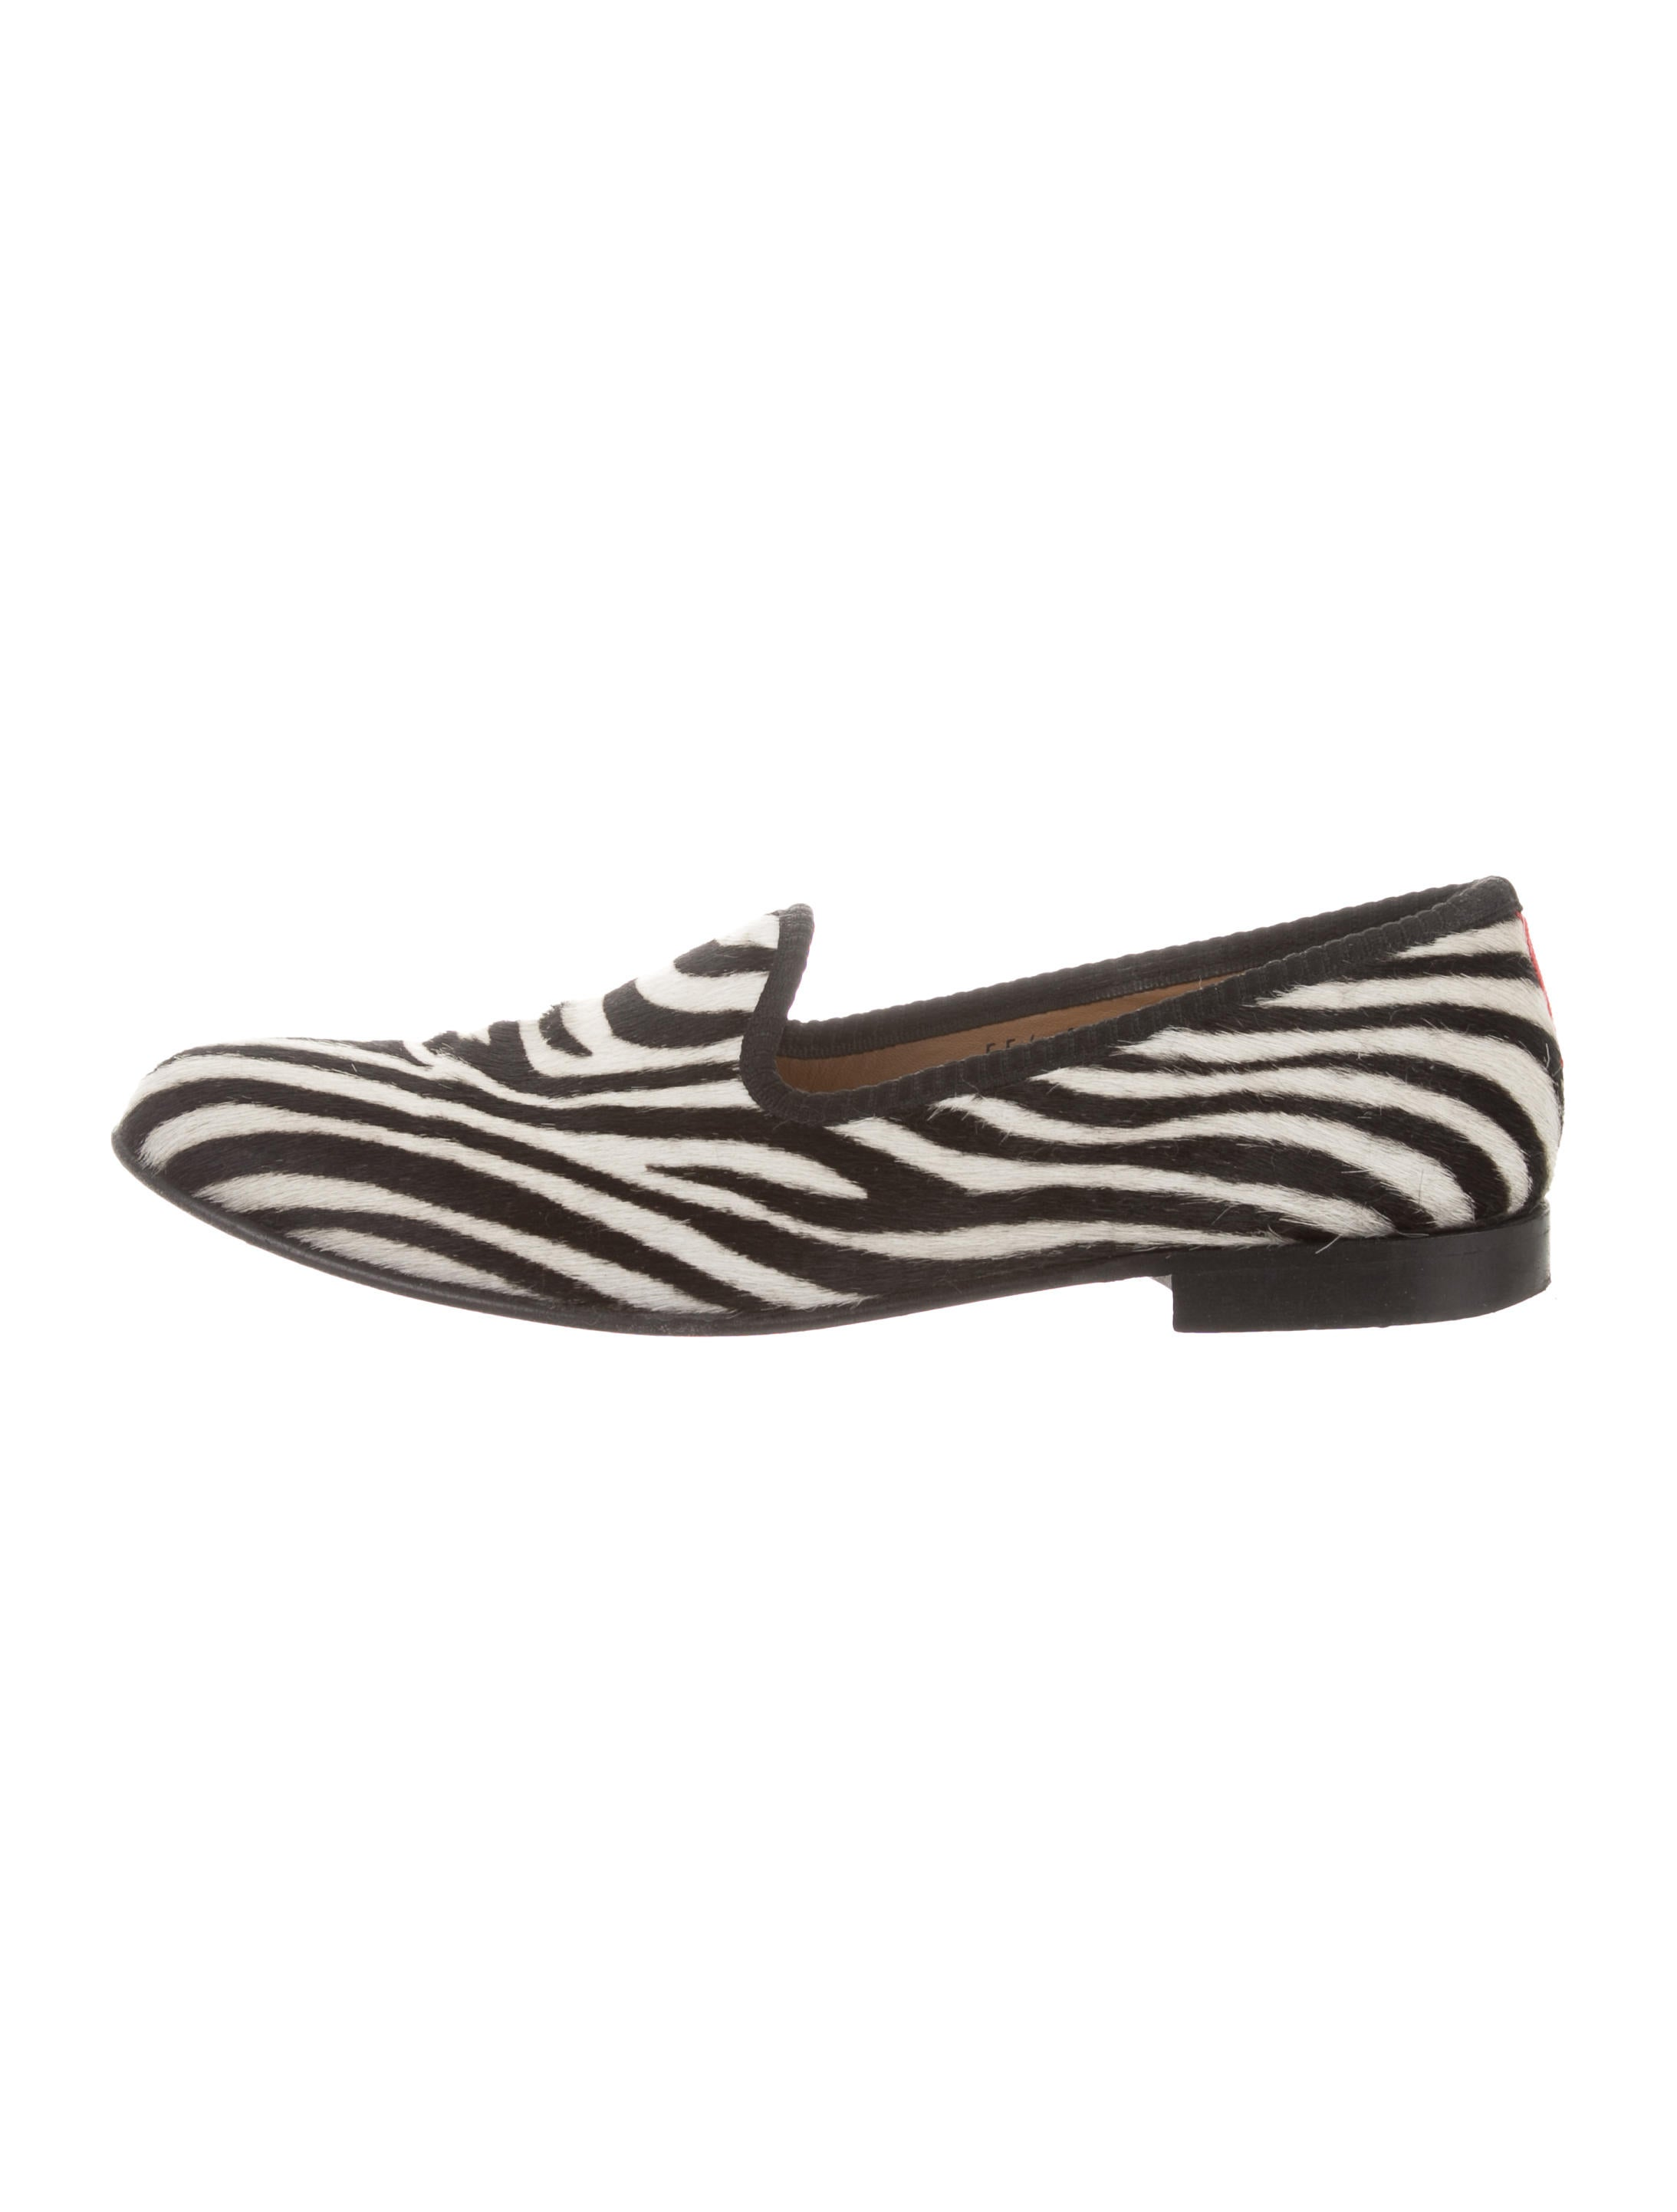 outlet purchase Del Toro Animal Print Round-Toe Loafers 2015 new cheap online clearance 2014 new cheap latest collections VogW8RjH